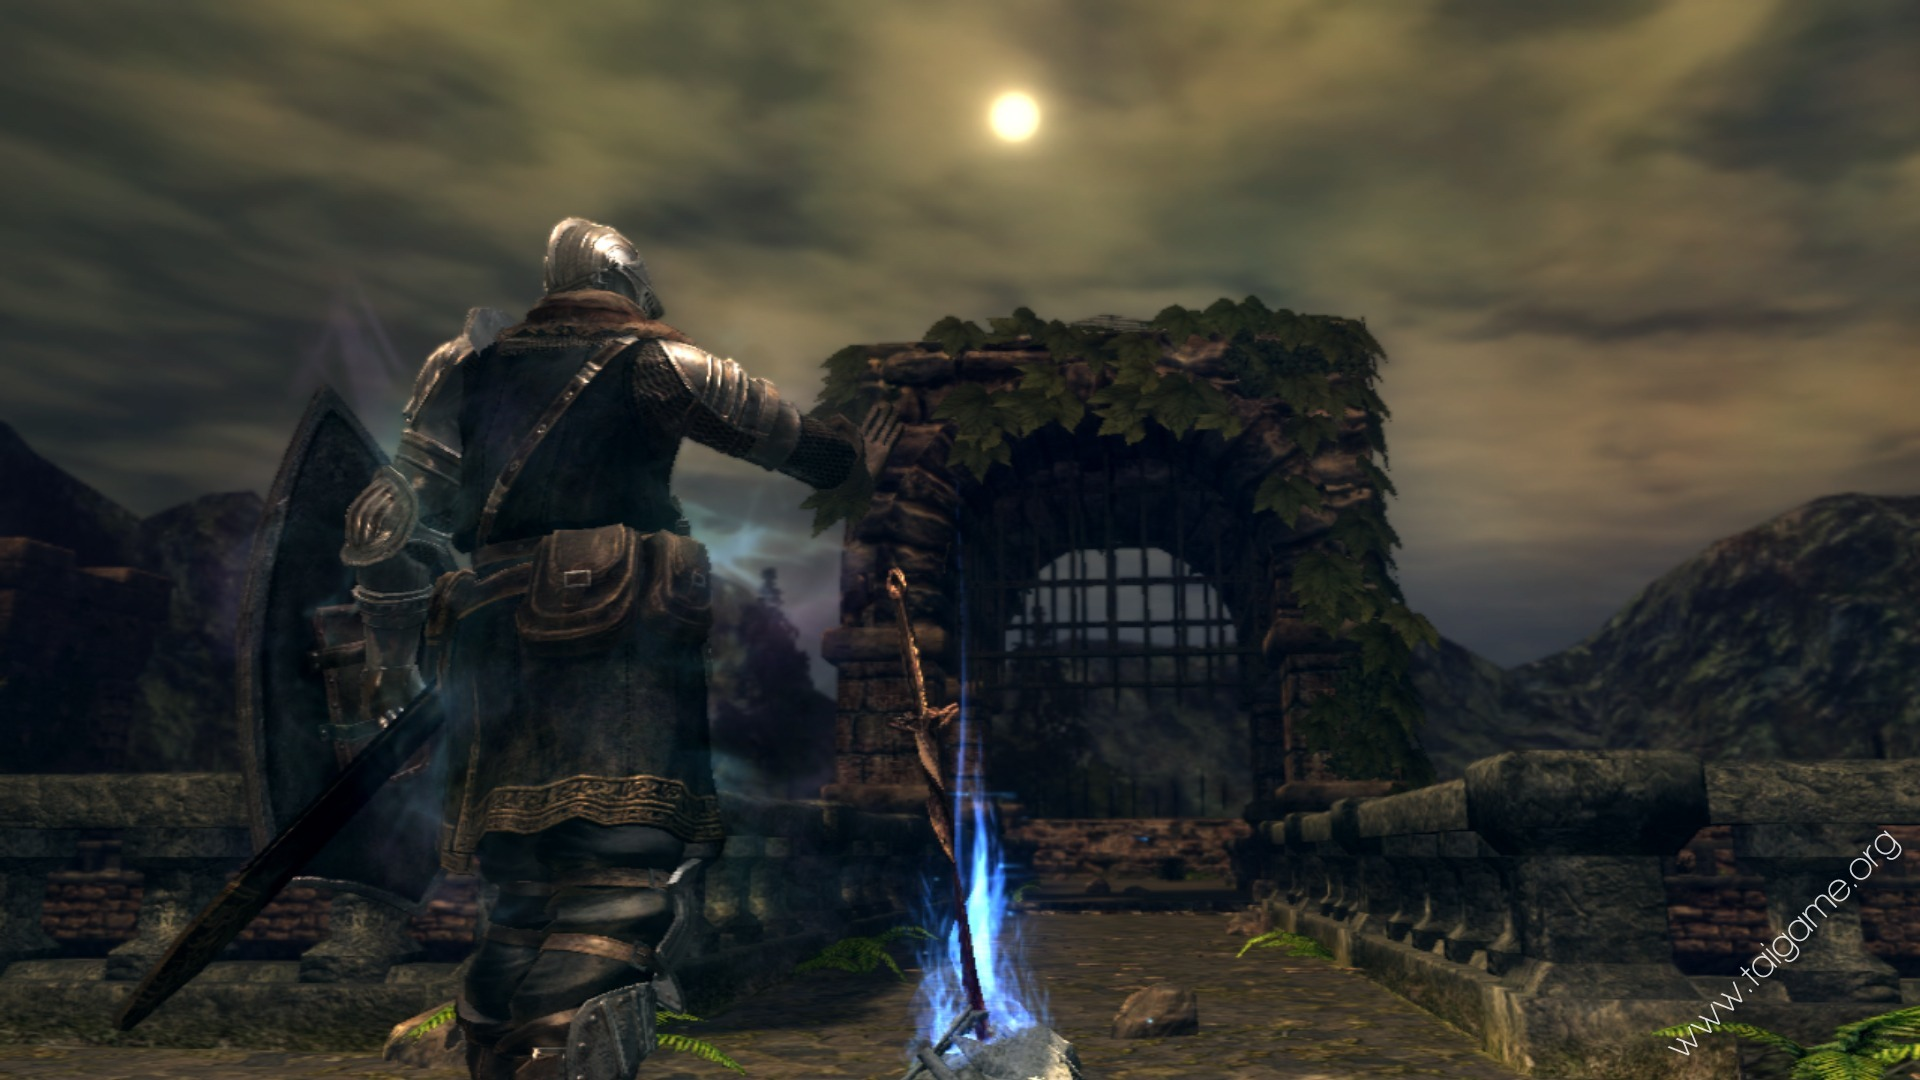 Demon s Souls (Video Game) - TV Tropes